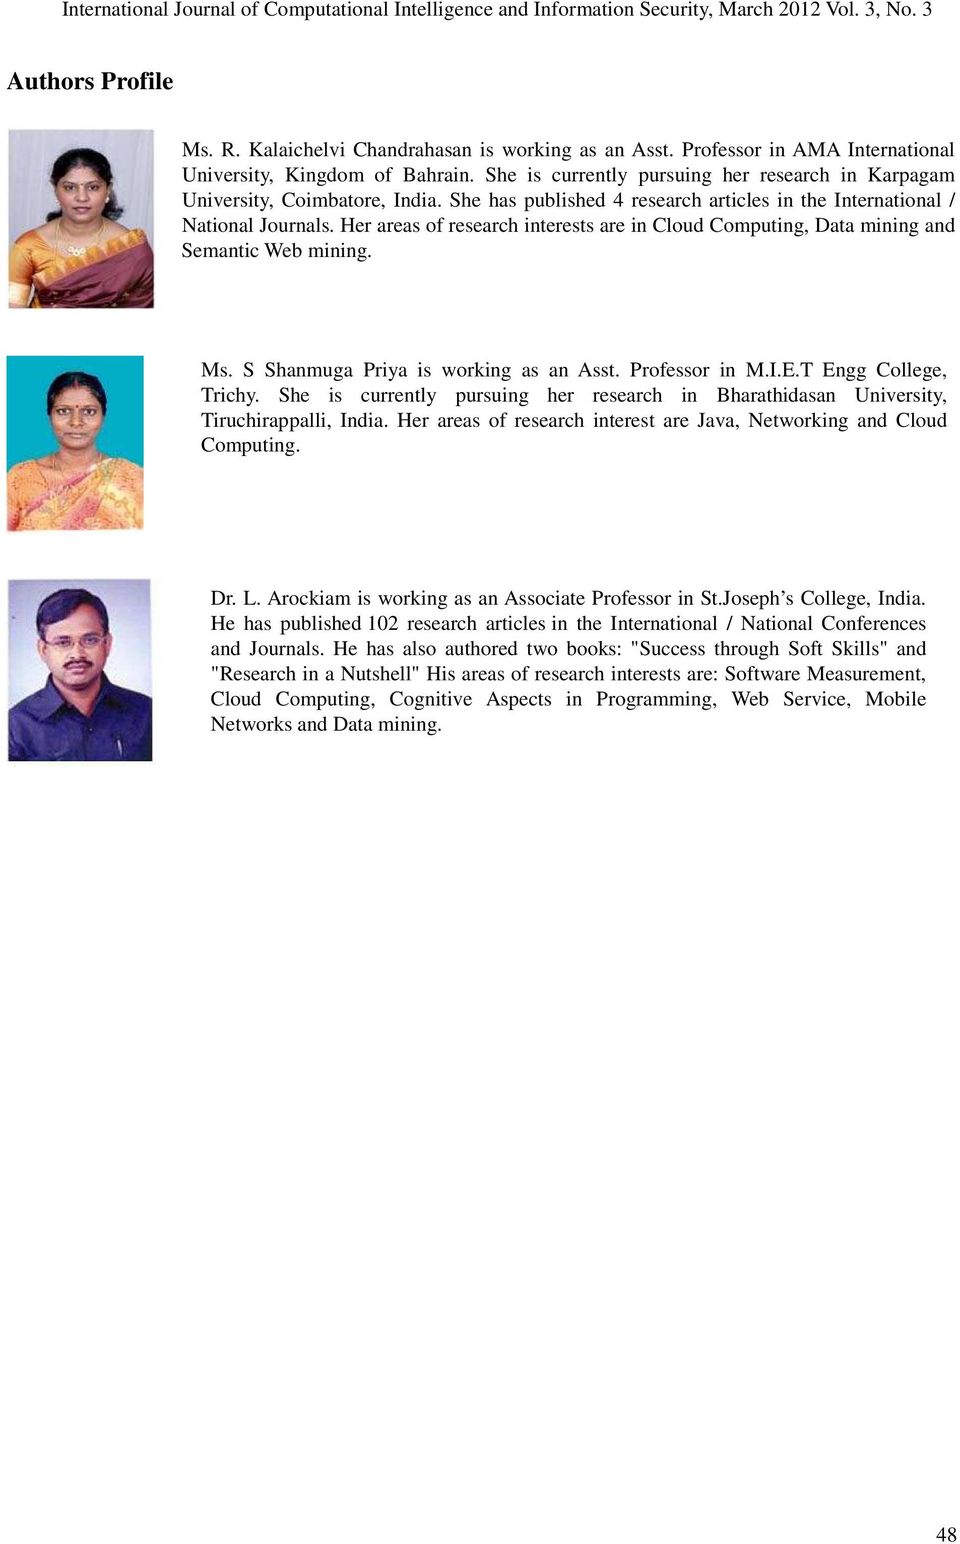 Her areas of research interests are in Cloud Computing, Data mining and Semantic Web mining. Ms. S Shanmuga Priya is working as an Asst. Professor in M.I.E.T Engg College, Trichy.